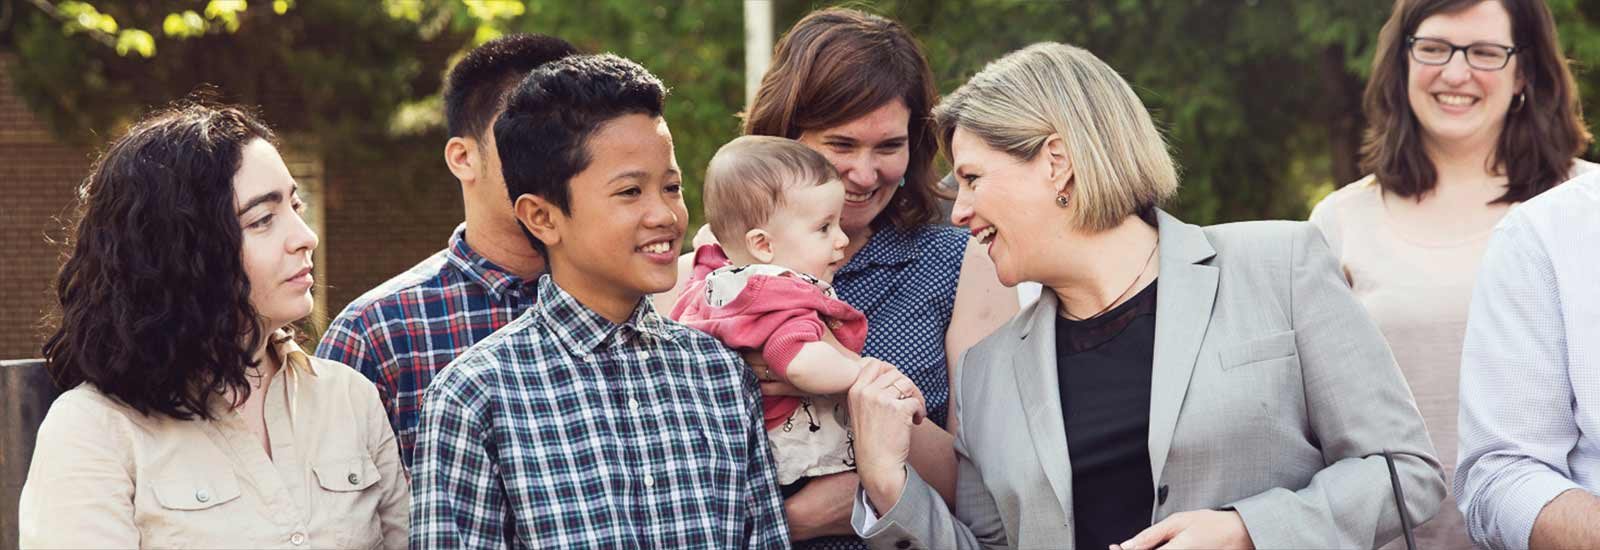 New services that make life better for everyone « Ontario NDP